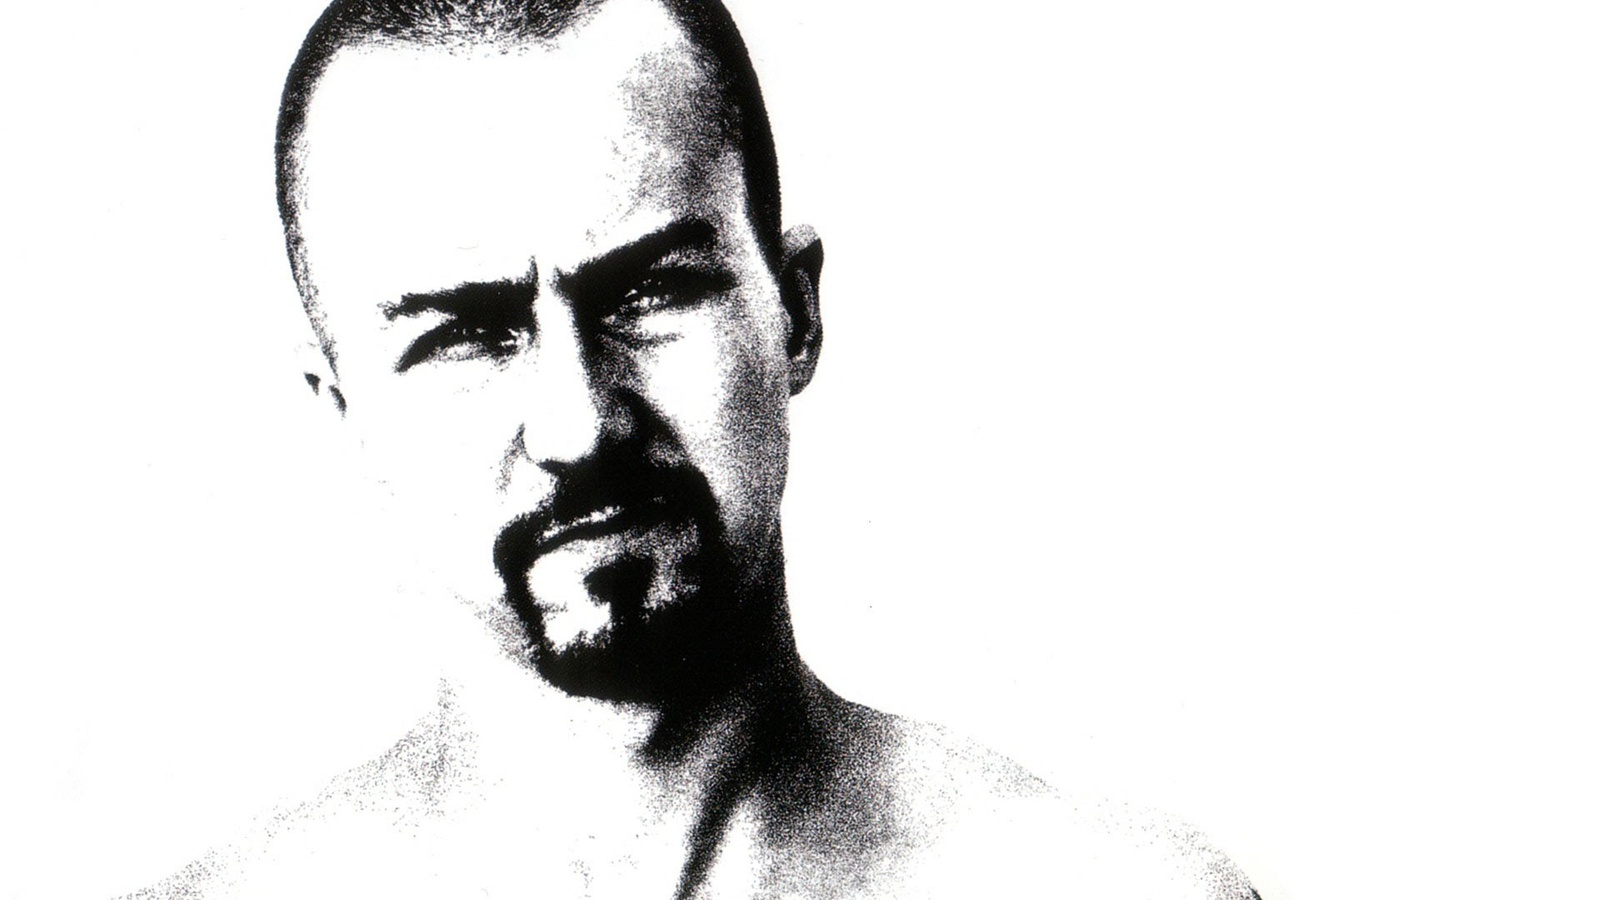 the themes of violence and sex scenes in american history x by tony kaye Drama, uncategorized director: tony kaye starring: alex sol, alexis rose coen, allie moss and others derek vineyard is paroled after serving 3 years in prison for killing two thugs who tried to break into/steal his truck.